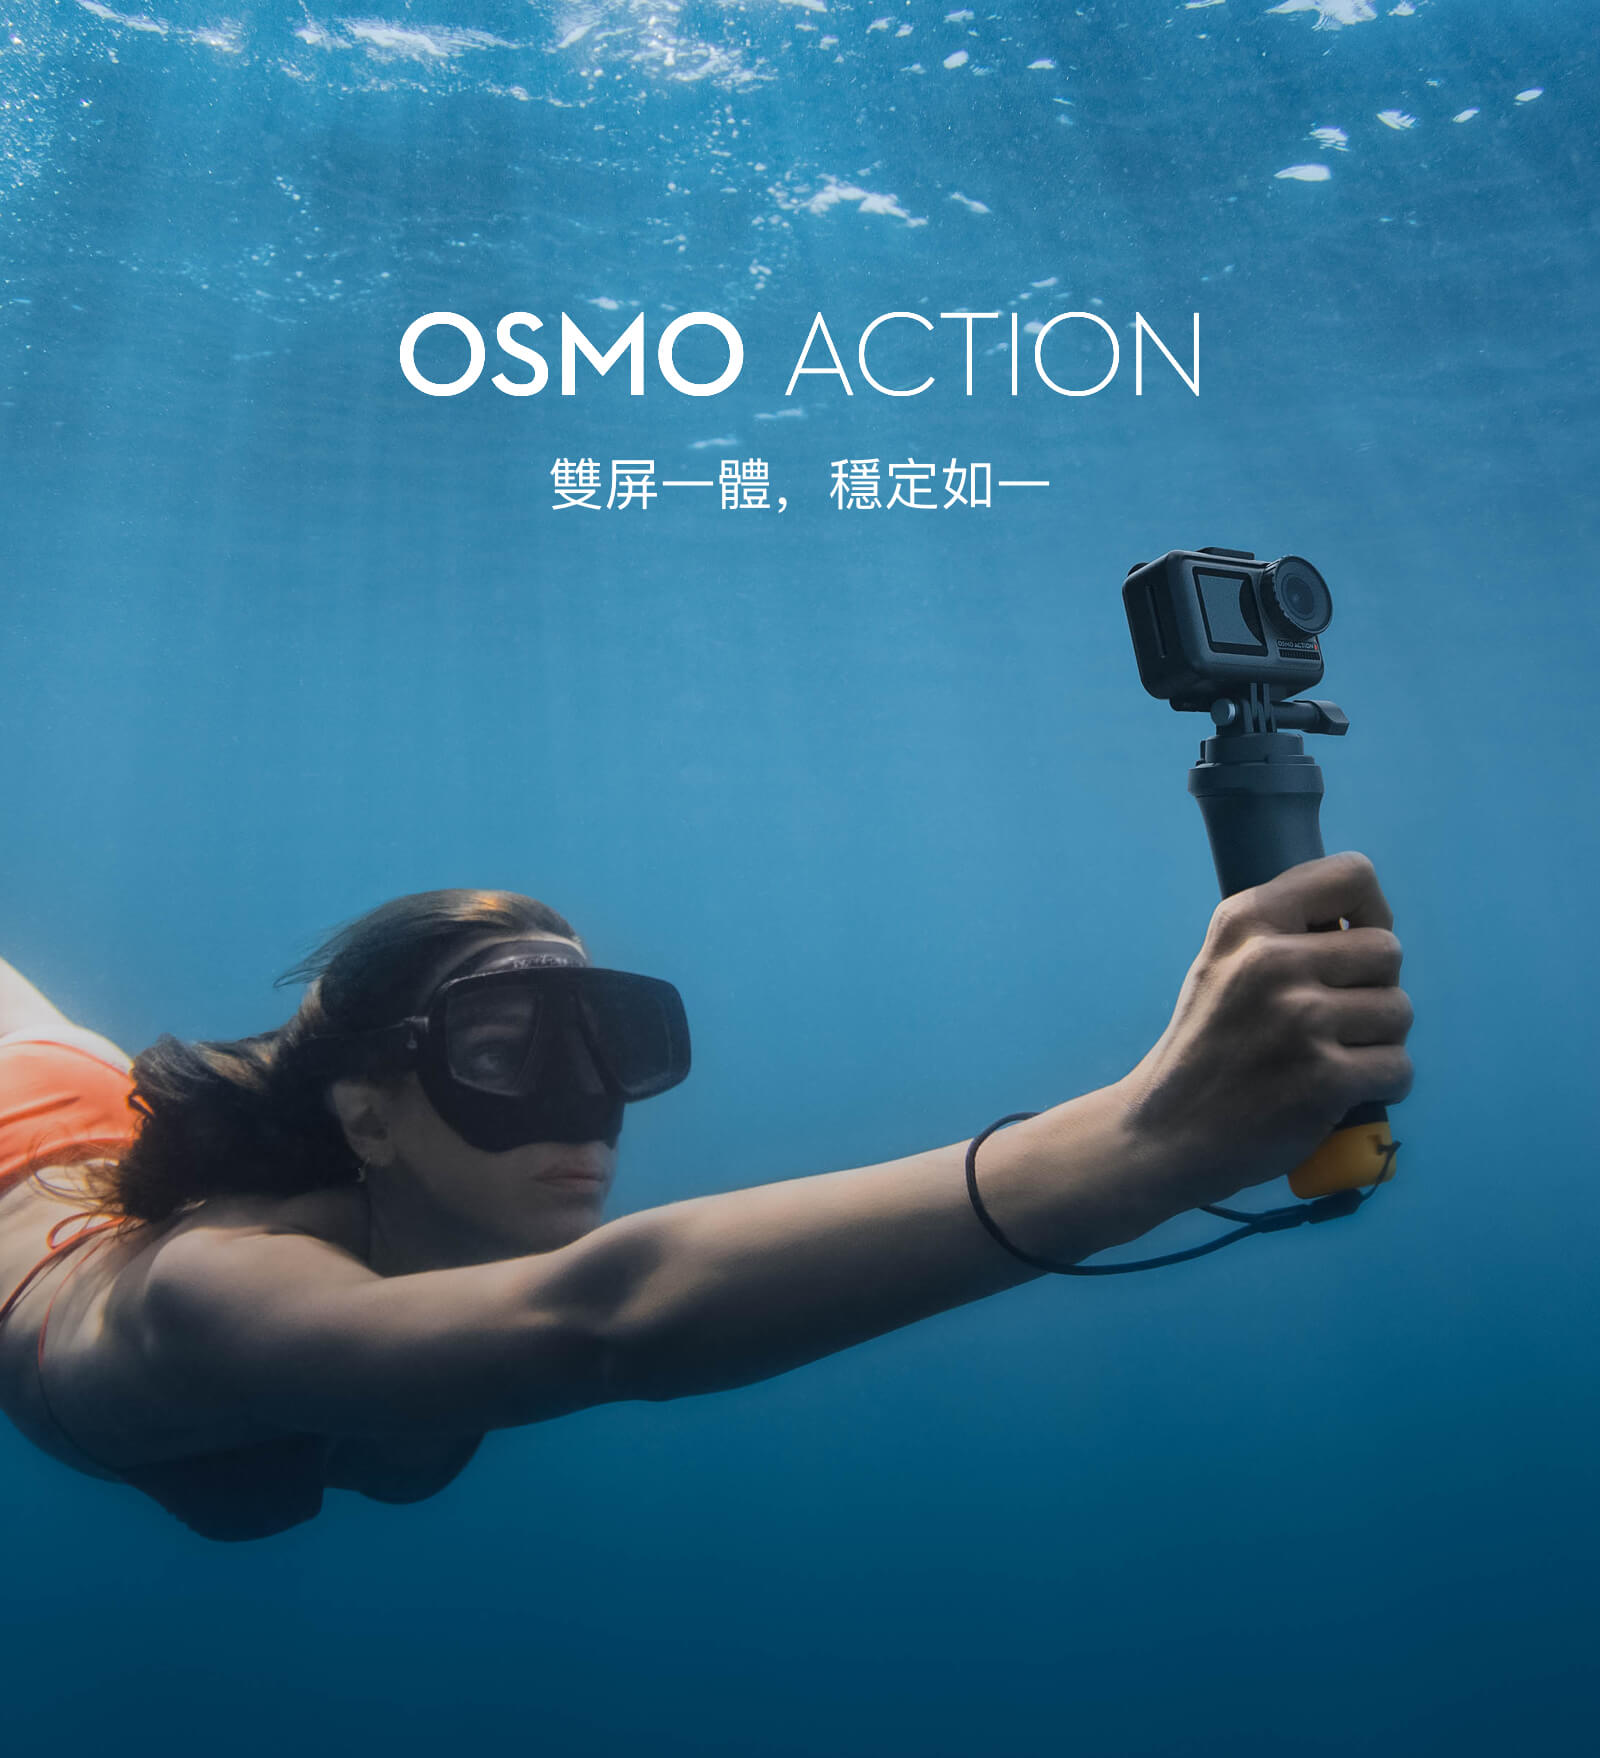 Osmo Action